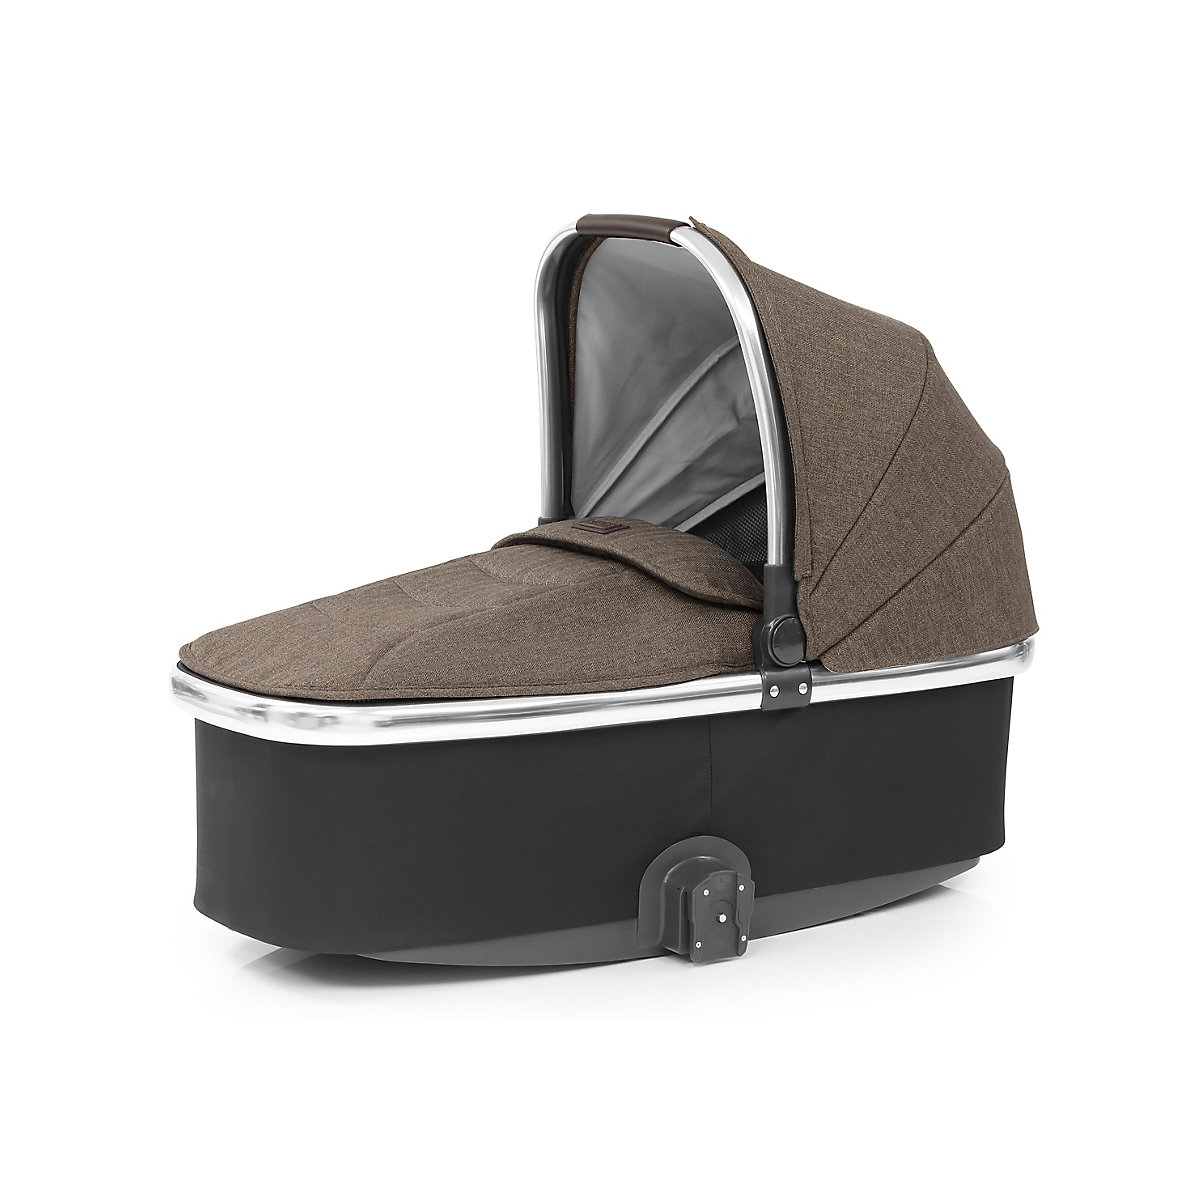 Babystyle Oyster Carrycot